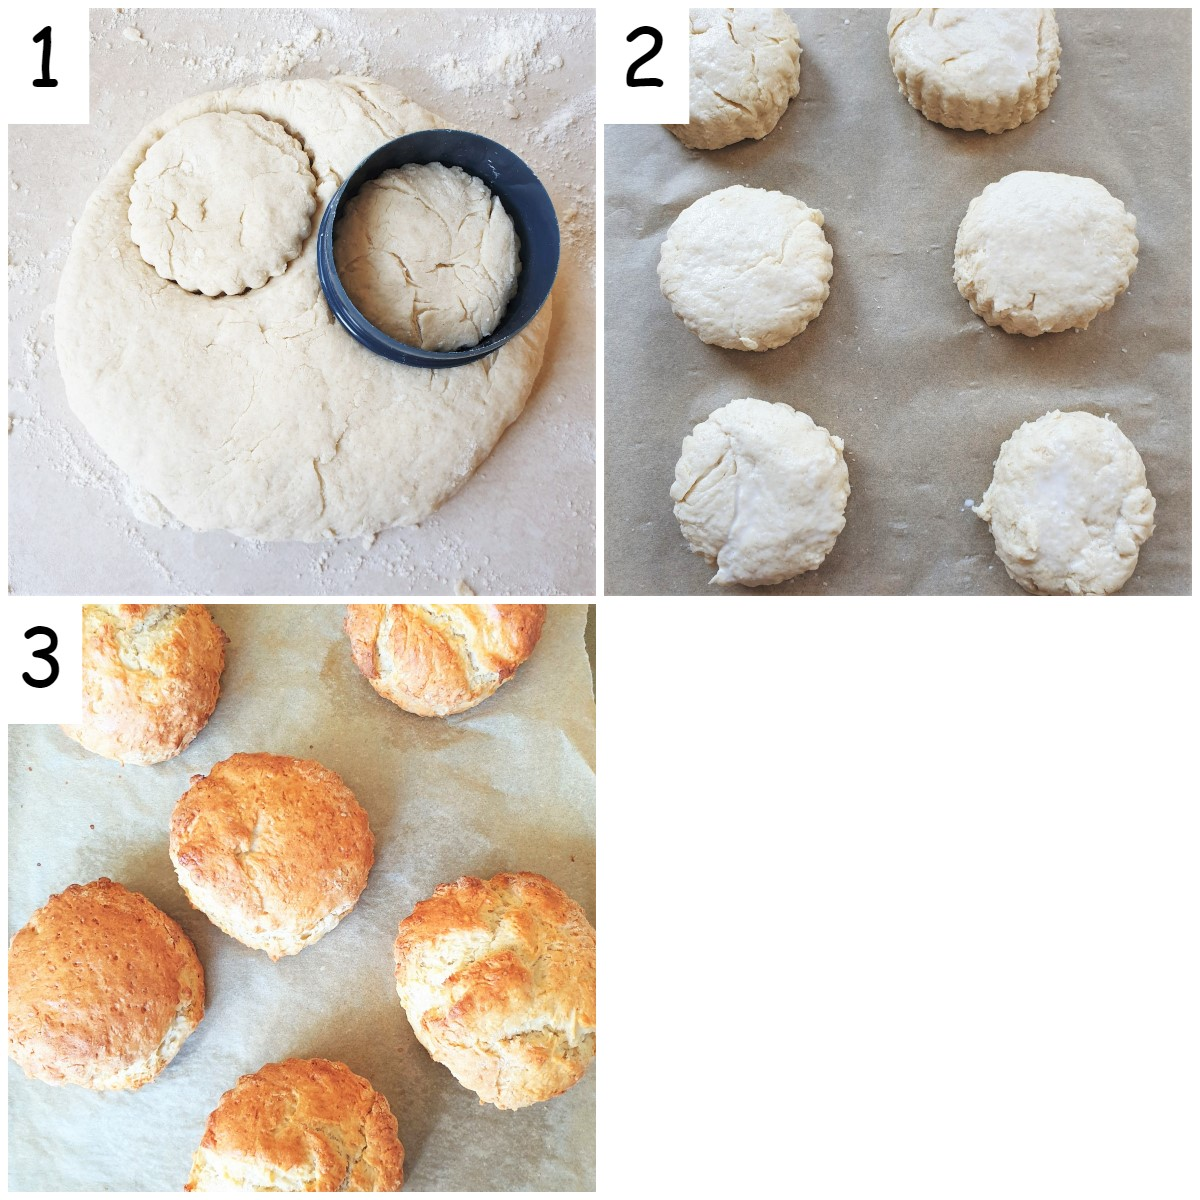 A collage of 3 images showing how to cut the scones and bake them.